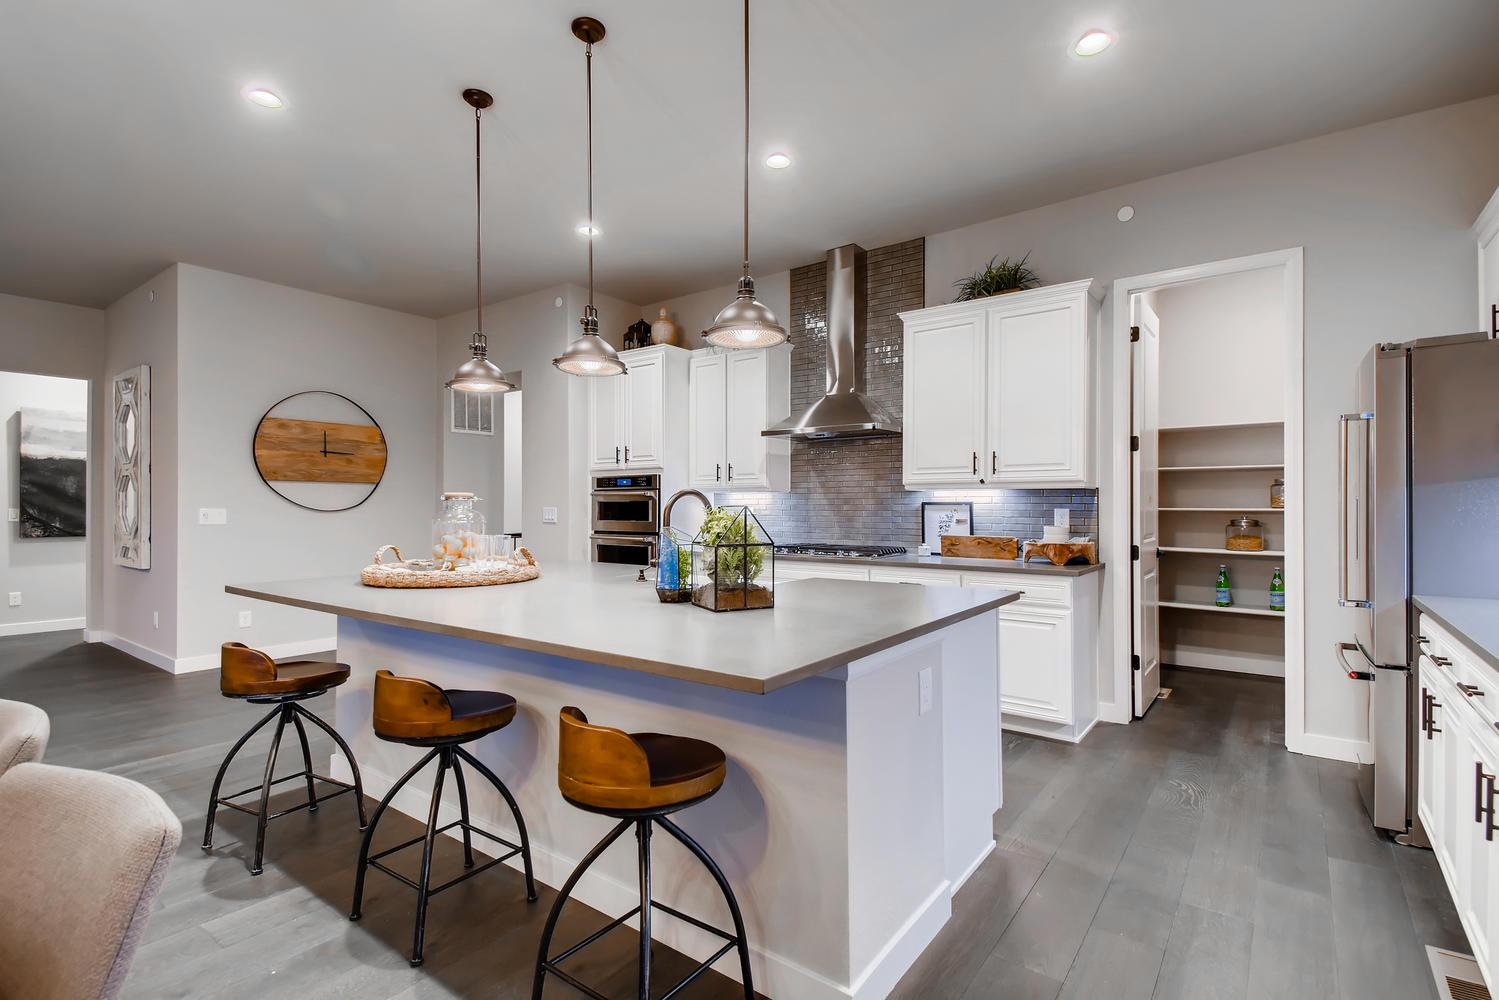 Kitchen featured in the Penrose - Promontory at Todd Creek By RichfieldHomes in Denver, CO